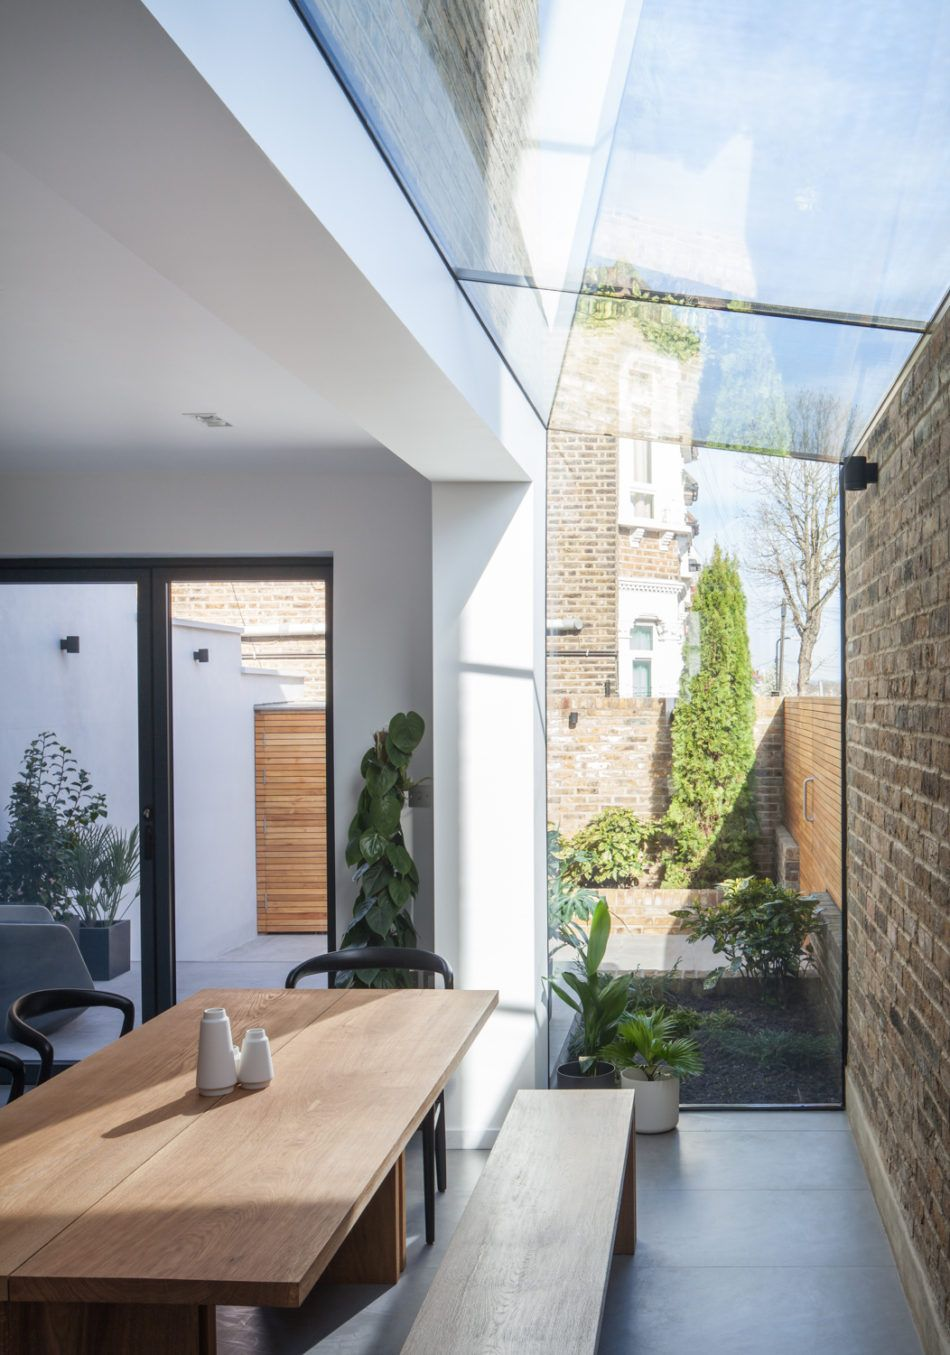 Renovated north London house designed by emergent practice Manea ...